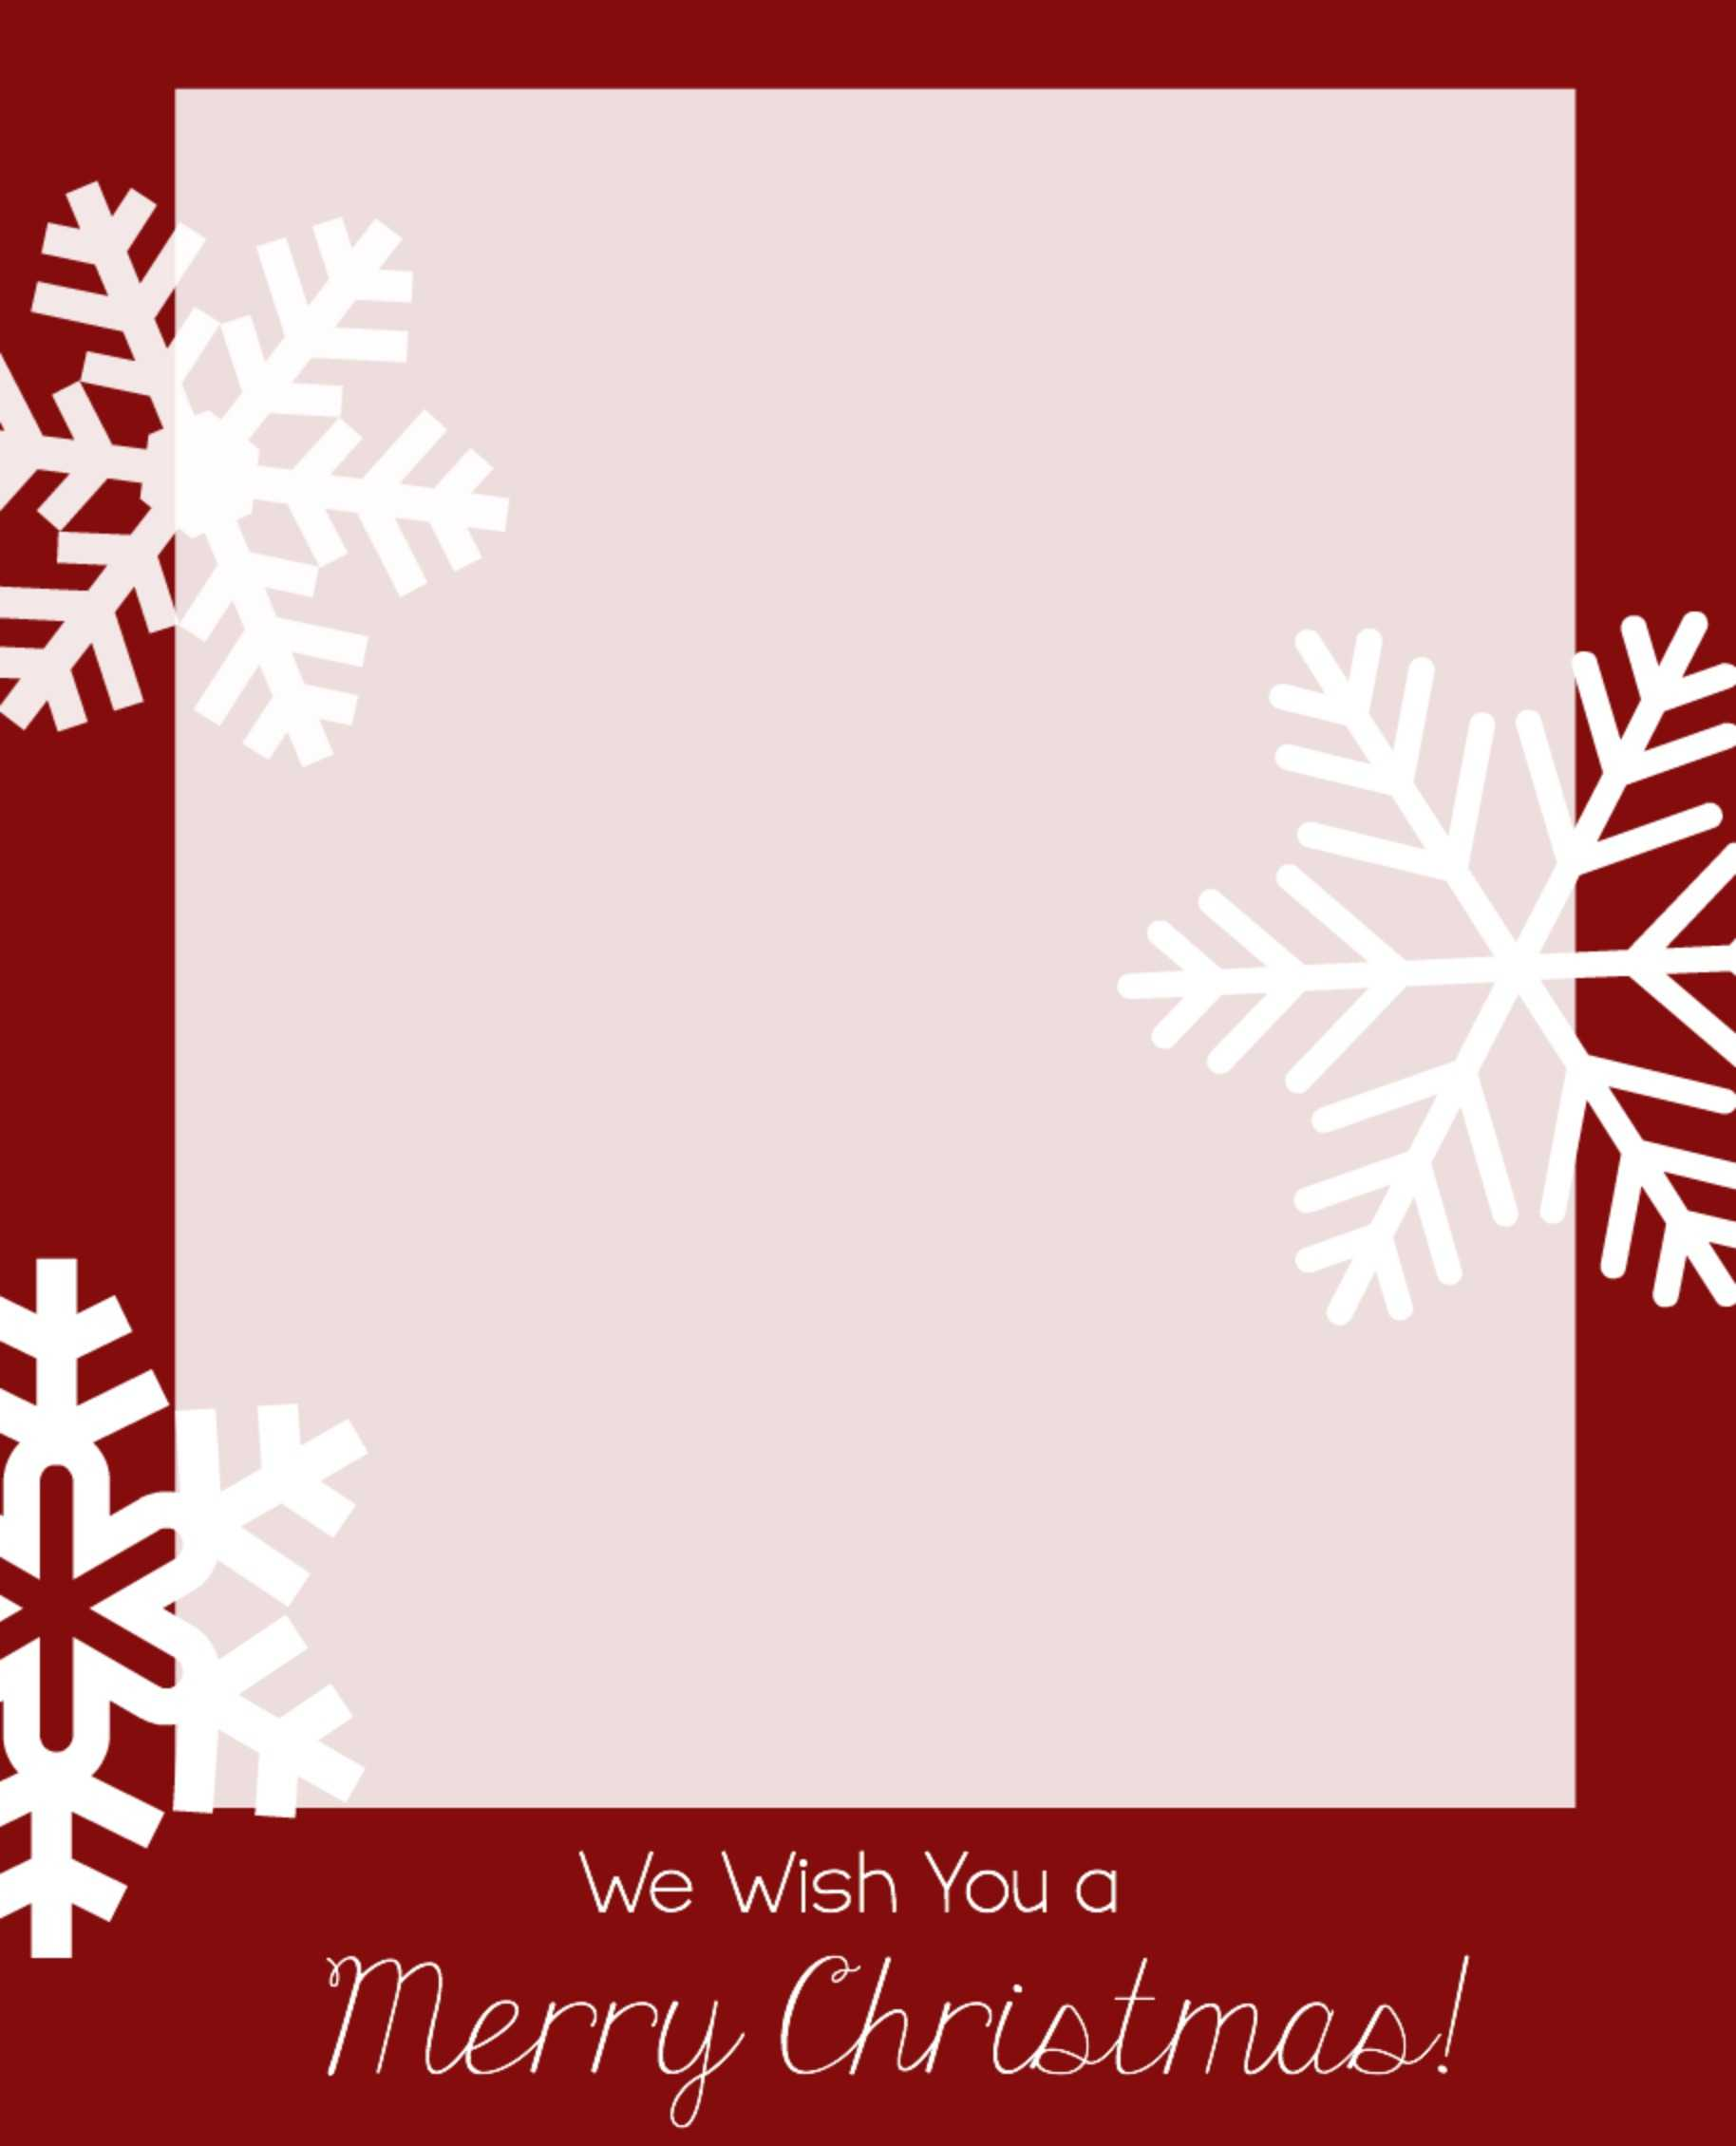 Photo Christmas Card Templates – Zohre.horizonconsulting.co Throughout Free Christmas Card Templates For Photographers